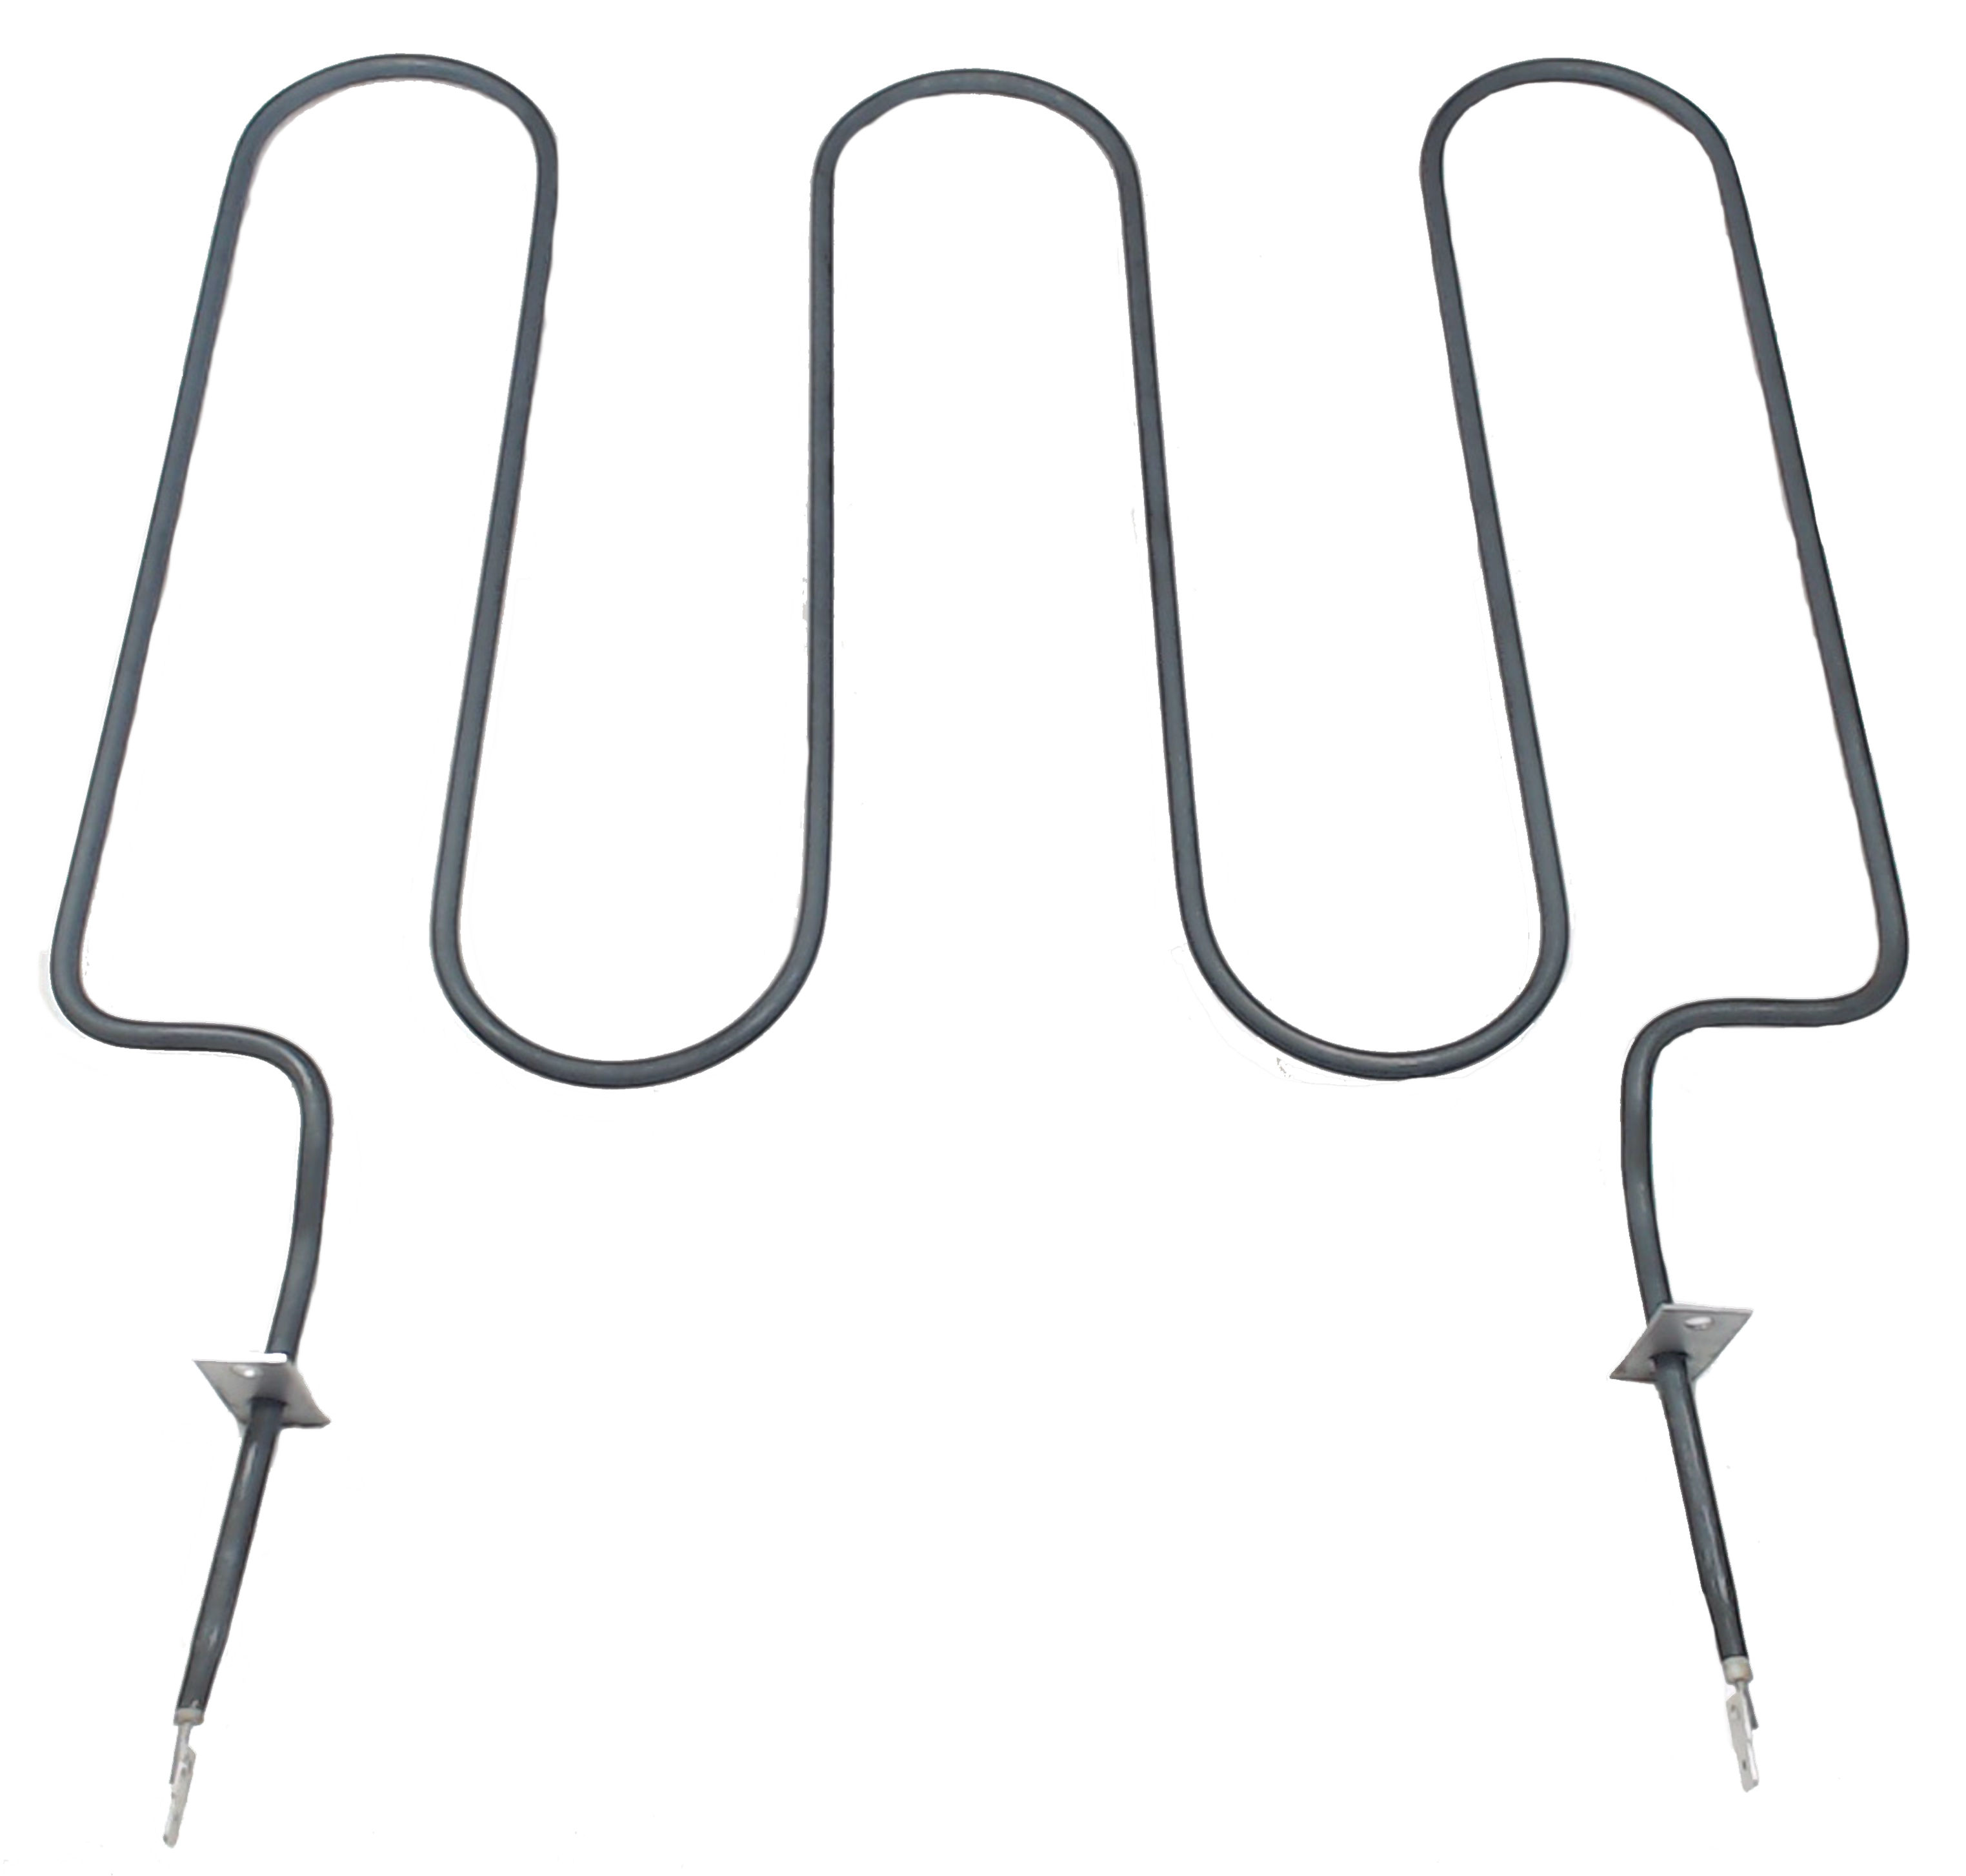 Broil Element for Frigidaire 316203301 Tappan PS439673 AP2126397